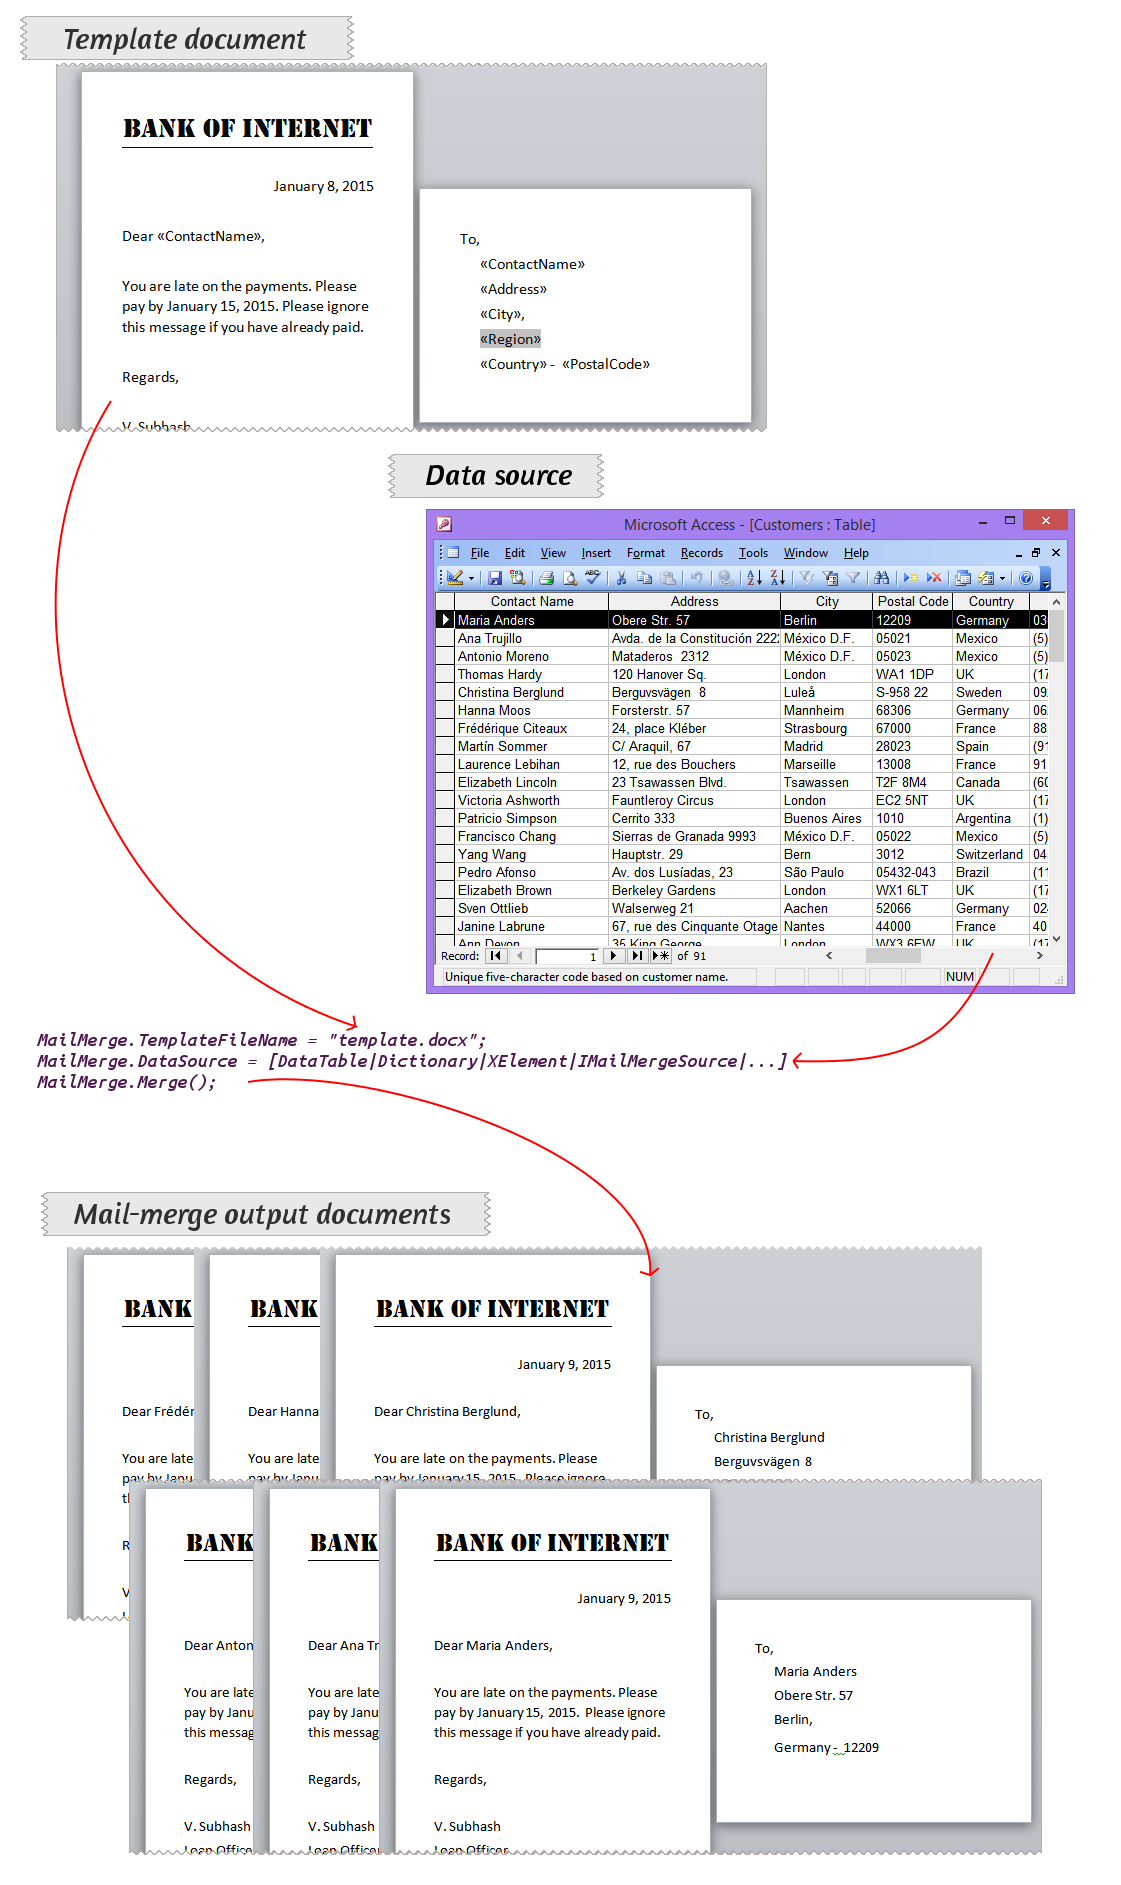 Create DOCX, DOC, PDF and images using mail-merge in .NET